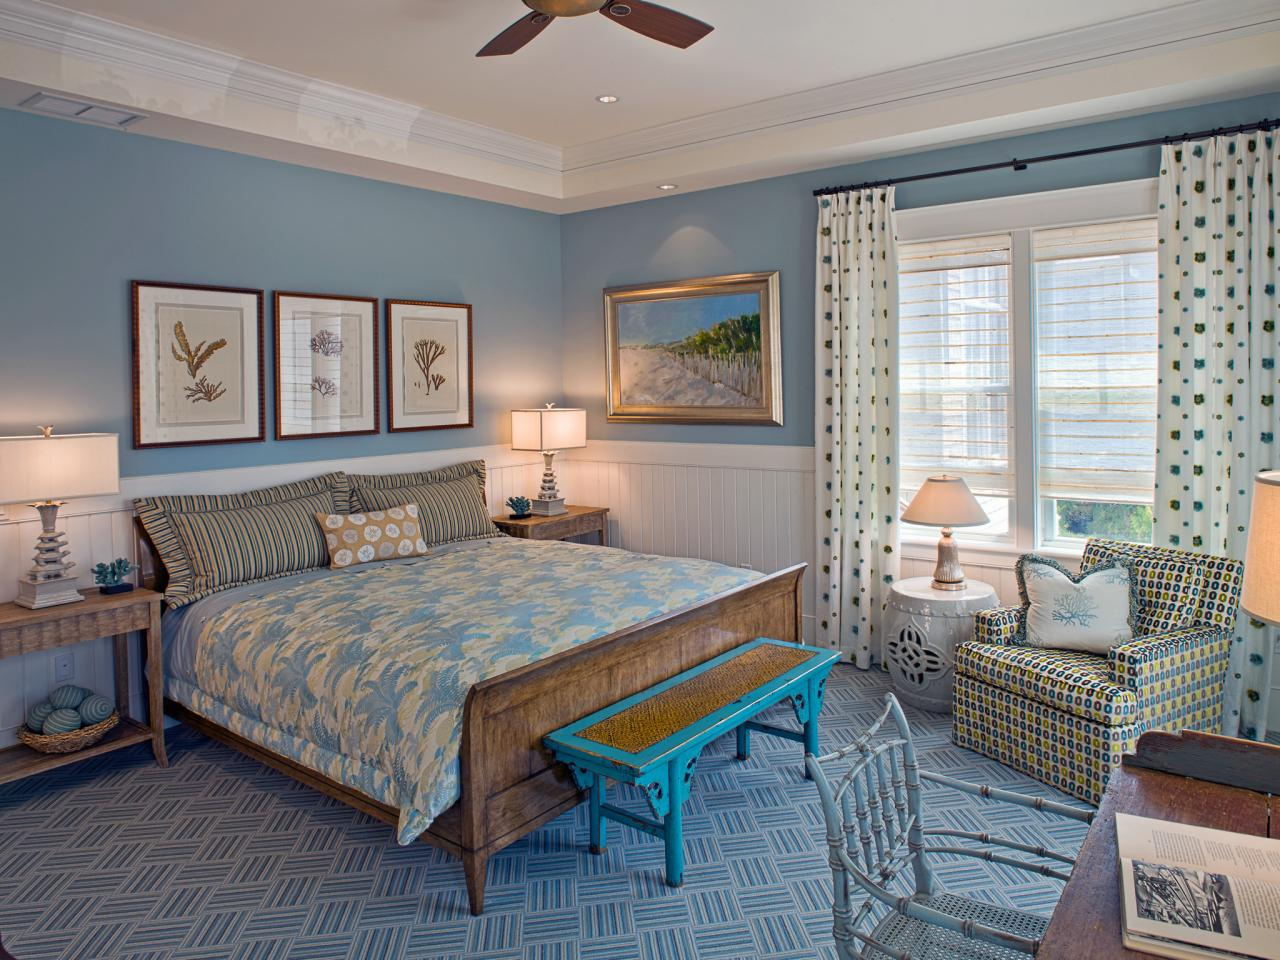 Bedroom design ideas blue - Blue Master Bedroom Ideas